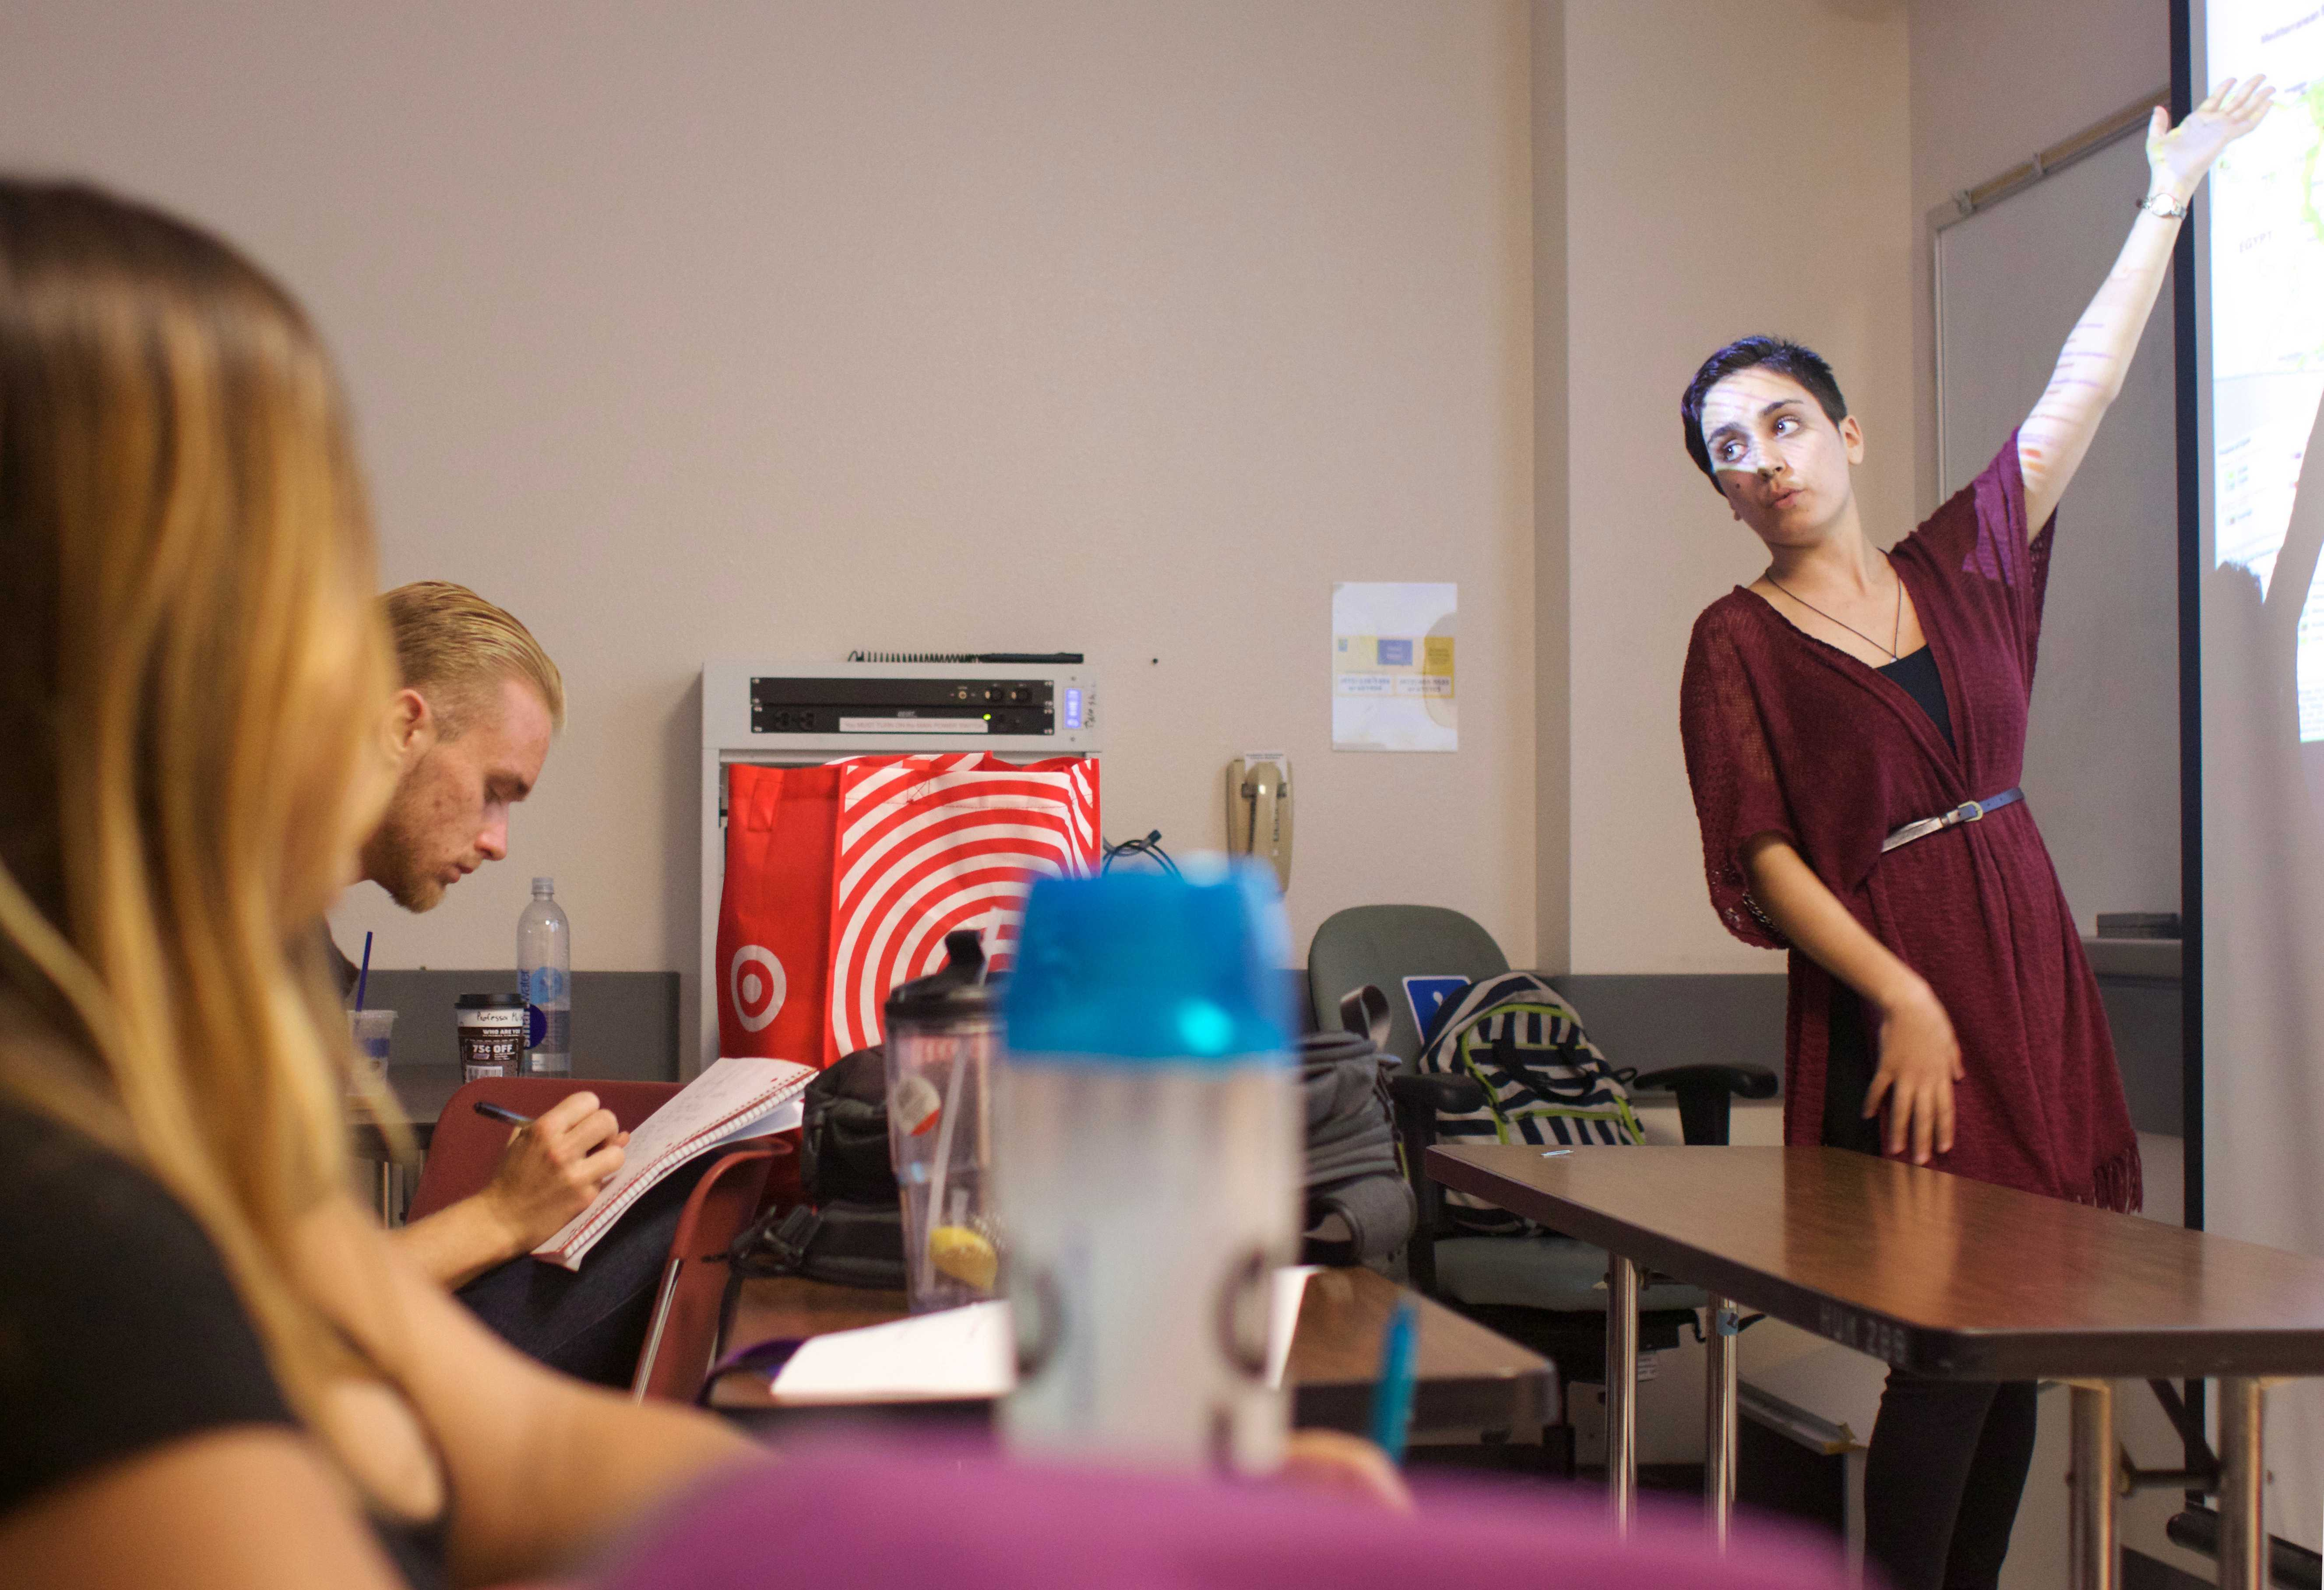 Alisar Mustafa teaches a class in the Humanities Building at SF State on Monday, September 11, 2017. (Oscar Rendon/Golden Gate Xpress)